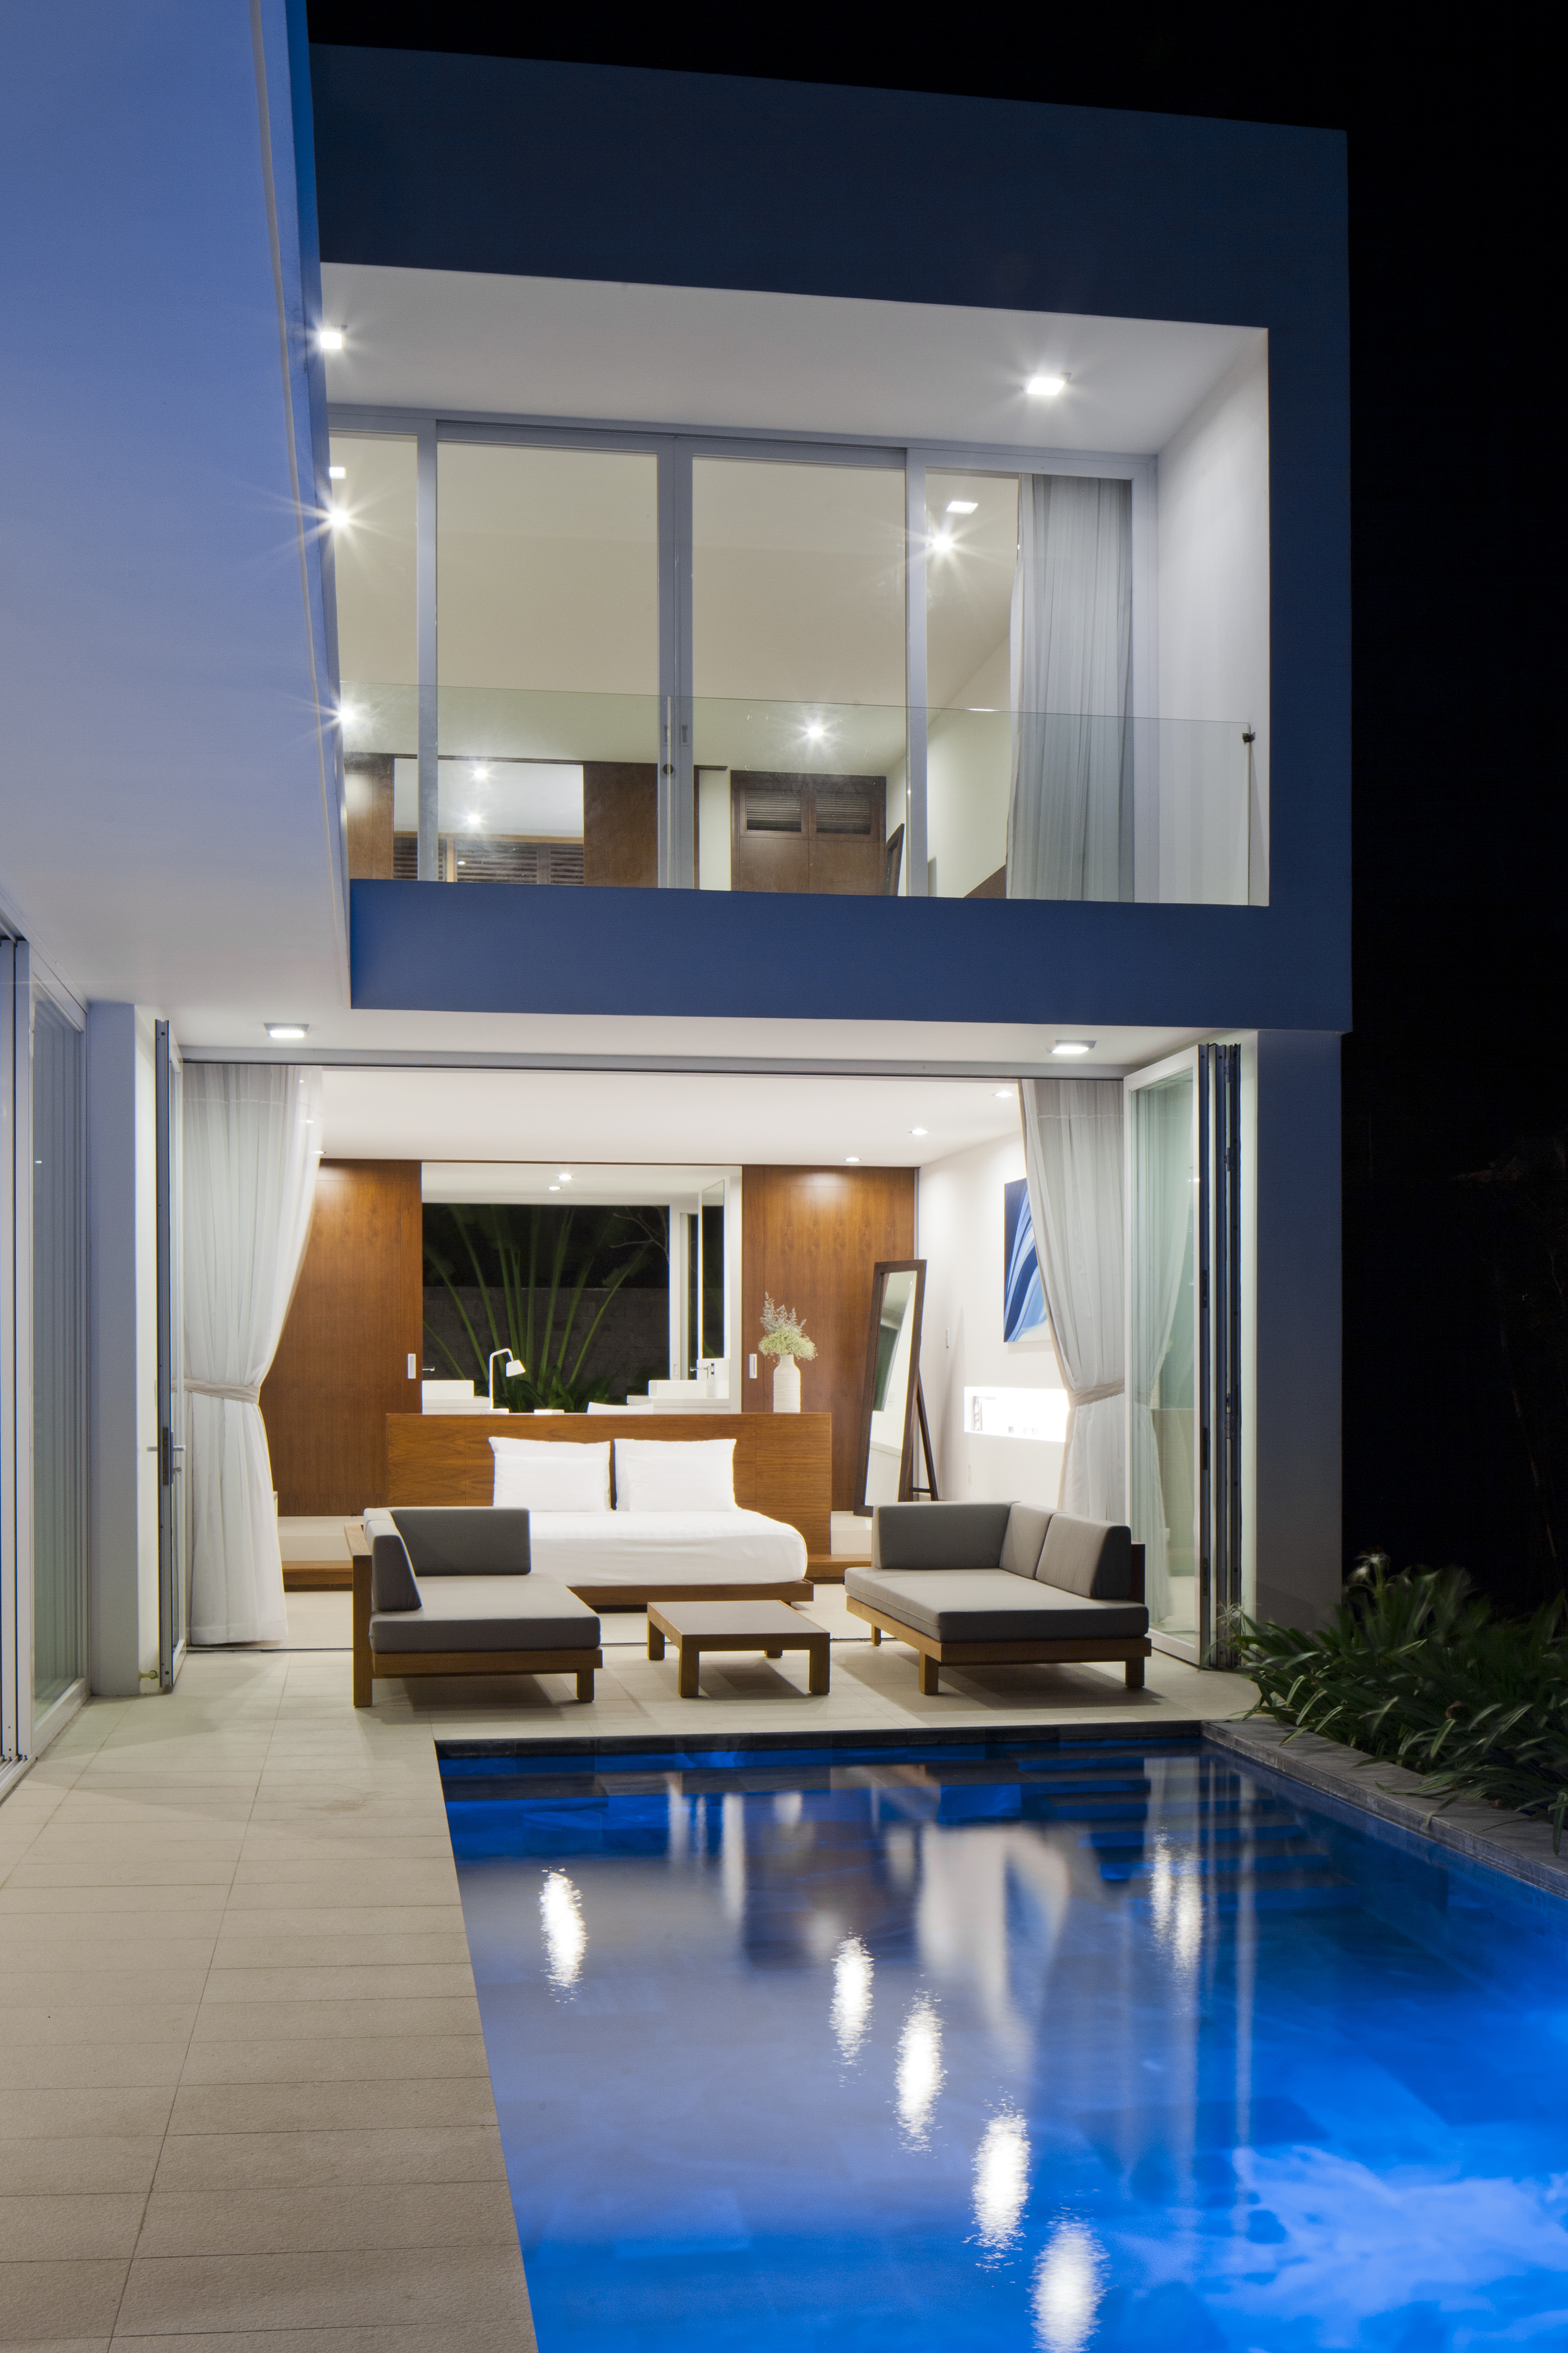 At night, with the interior glowing out over the infinity pool, we see the brilliant white-and-wood contrast in bedrooms, with private, glass-walled balcony overhead.